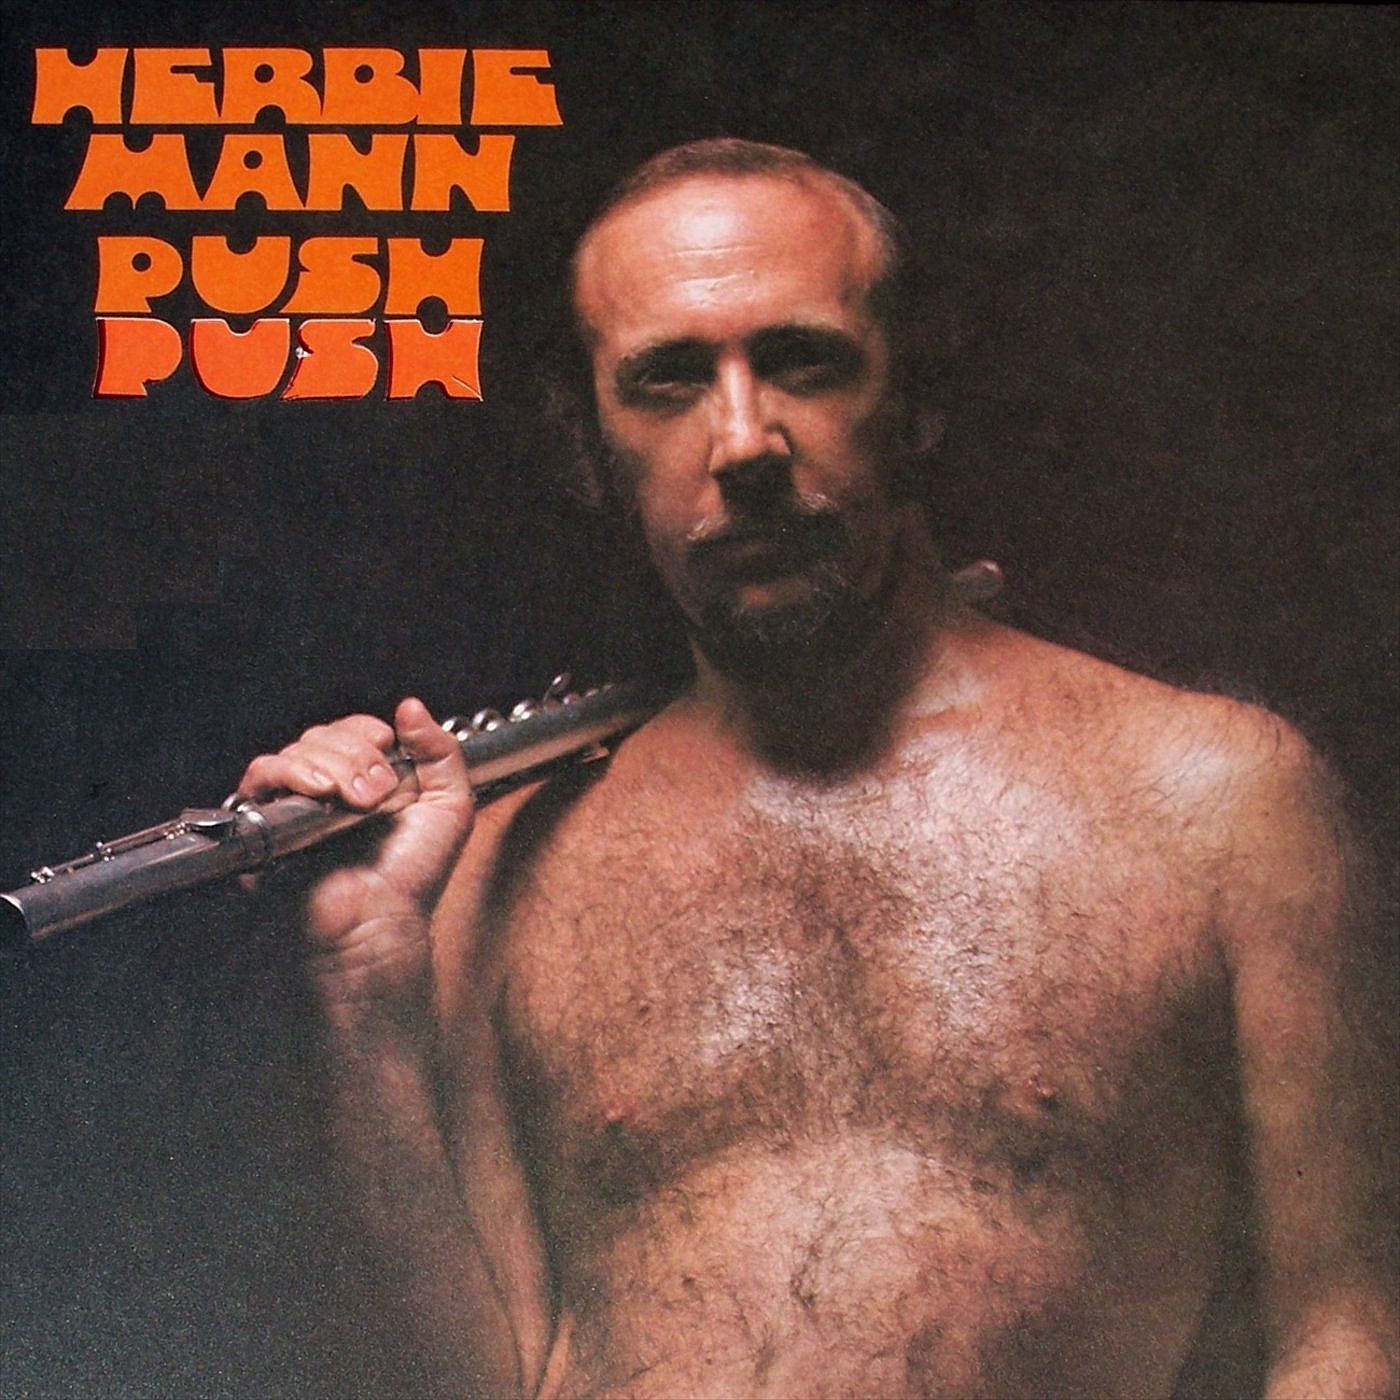 Album artwork for 'Push Push' by Herbie Mann